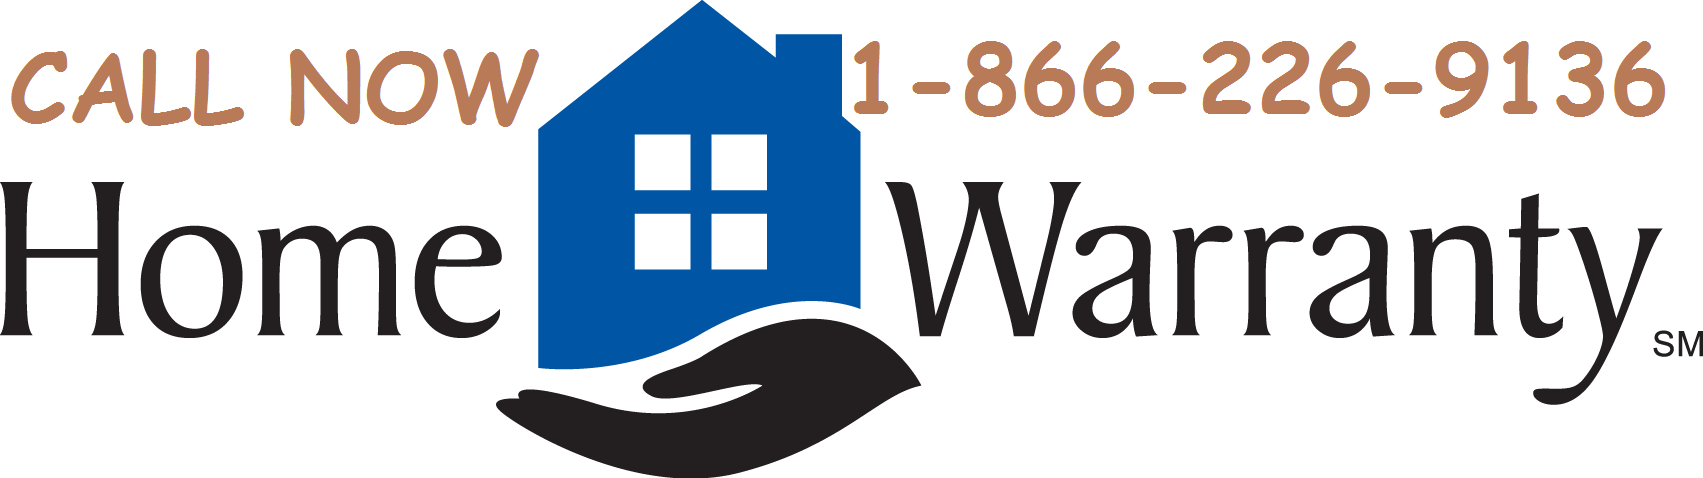 Home Warranty Bundle Offer Call Now to get a quote +1-866-226-9136